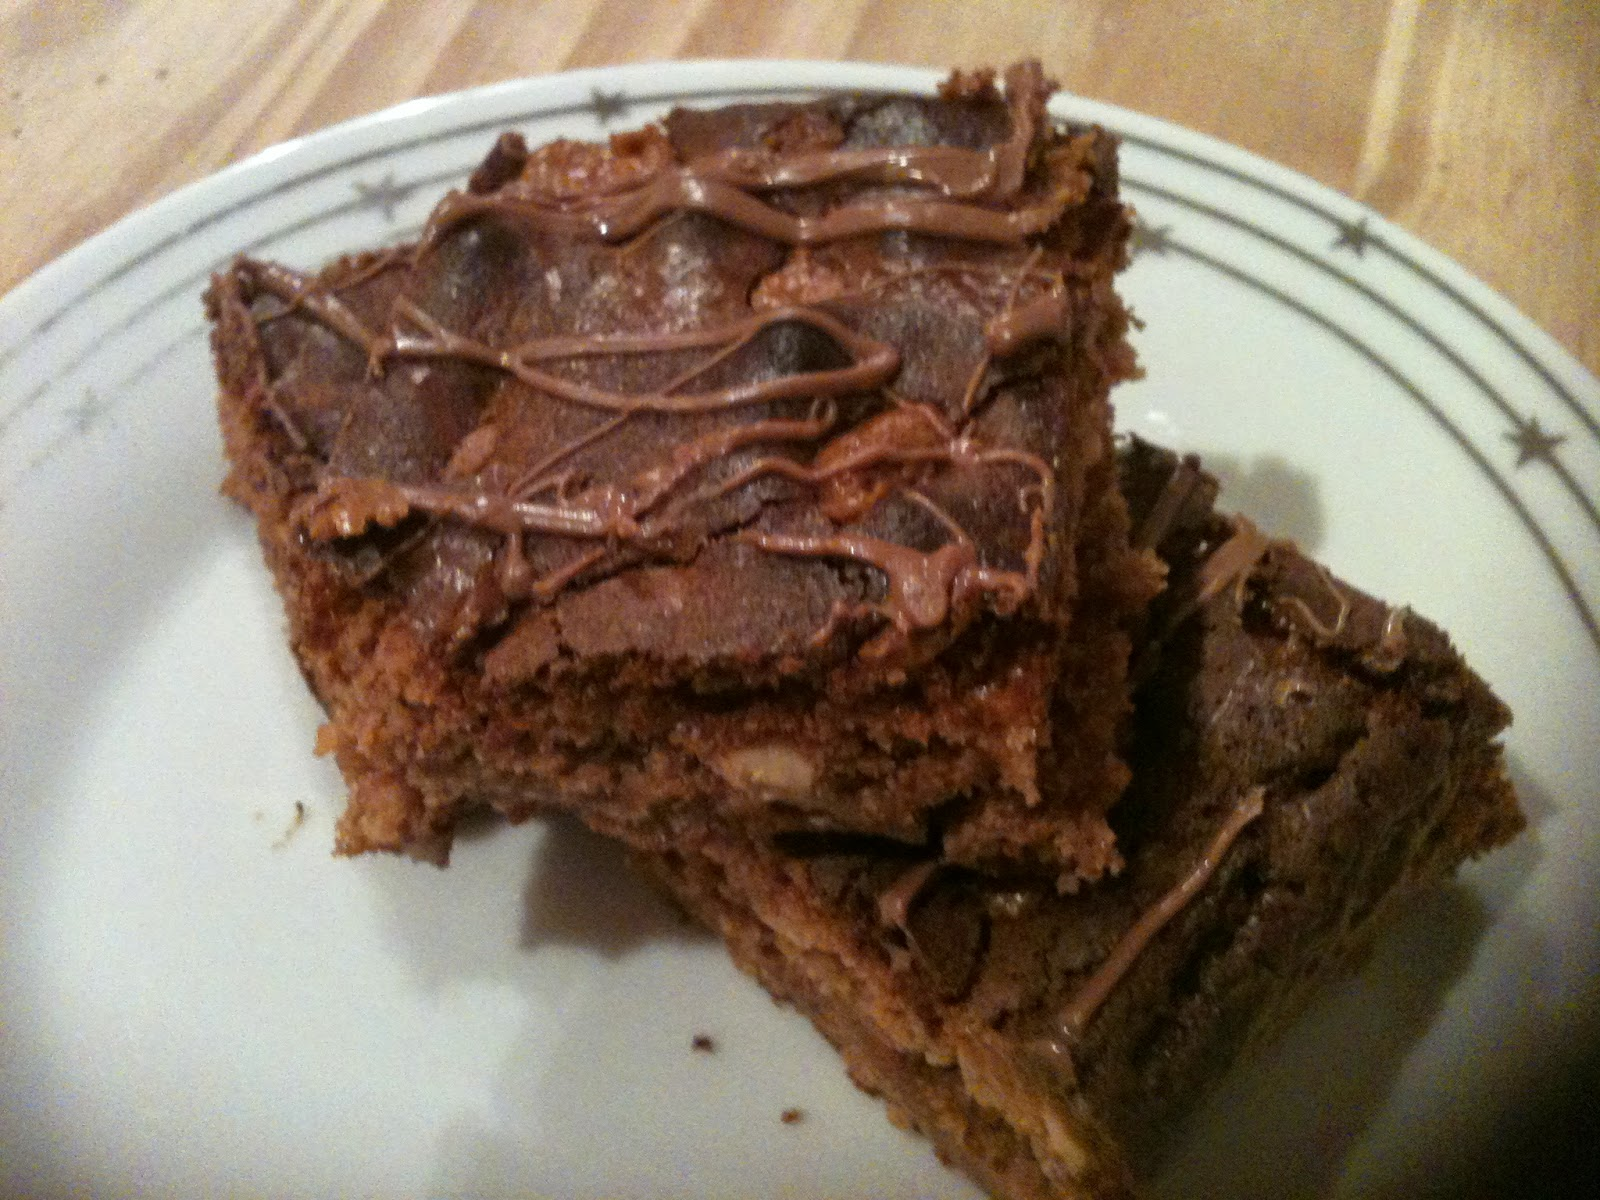 Peanut butter and chocolate brownies on a plate ready to eat